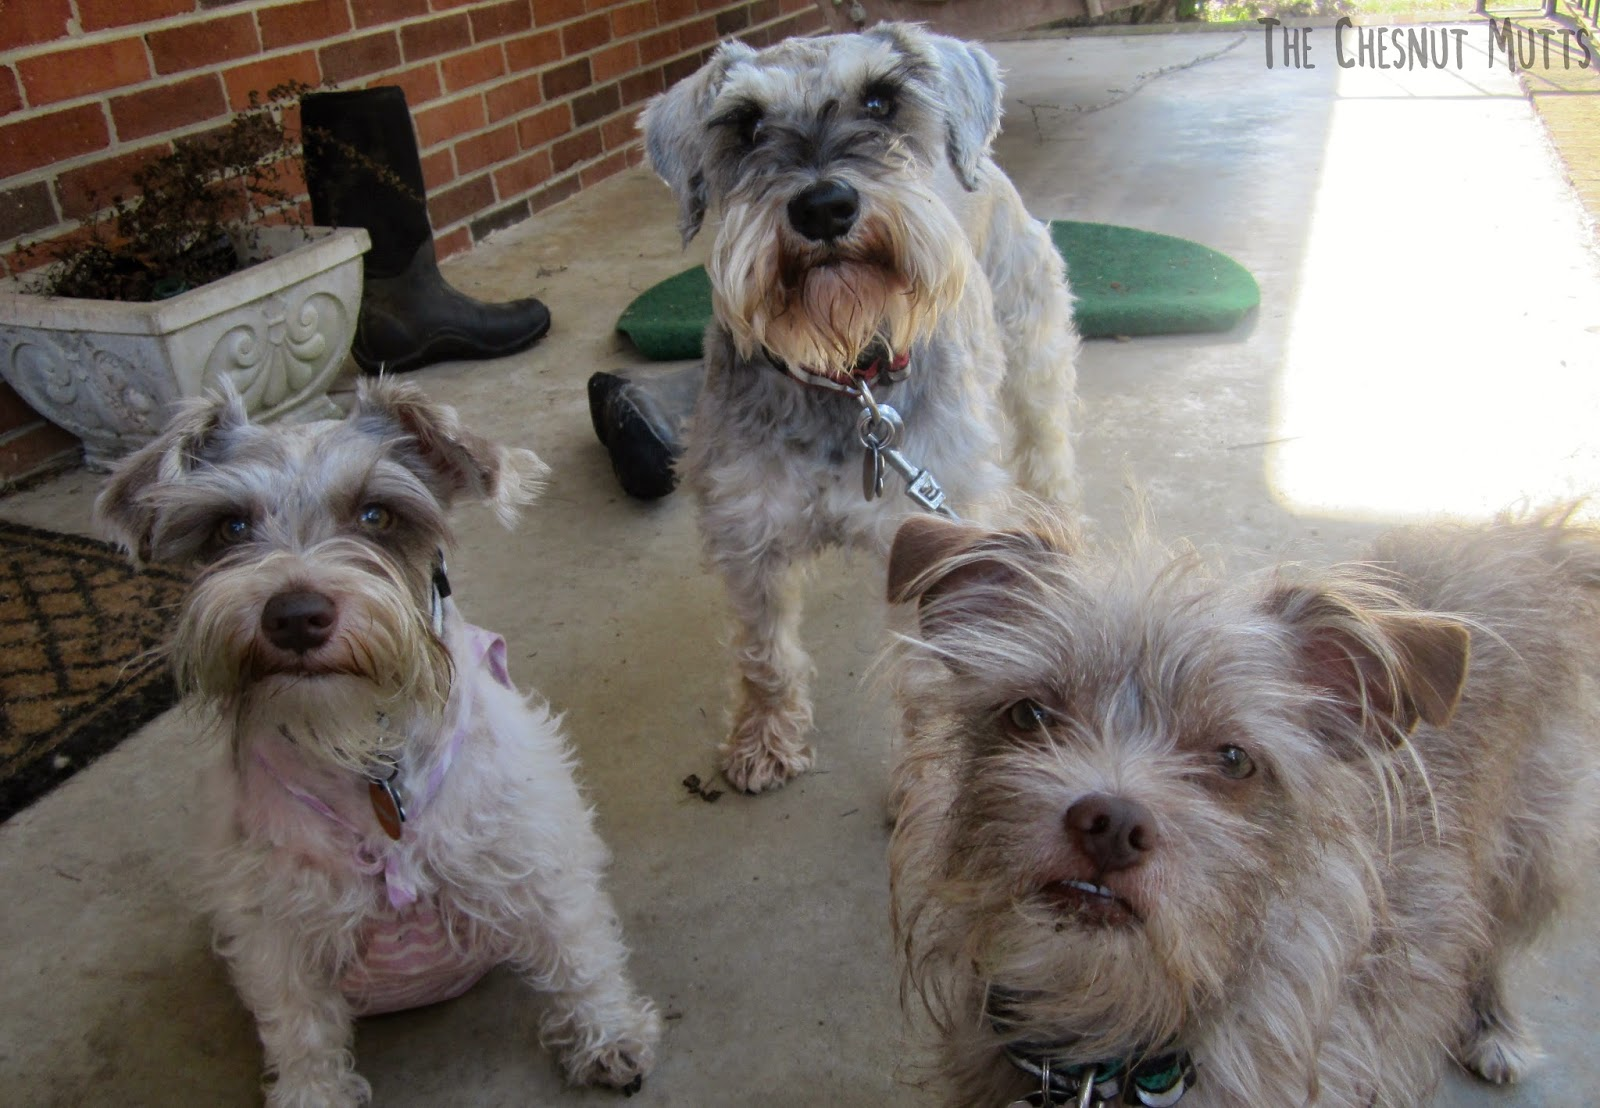 Dottie, Dibble, and Bailey waiting for a RedBarn treat